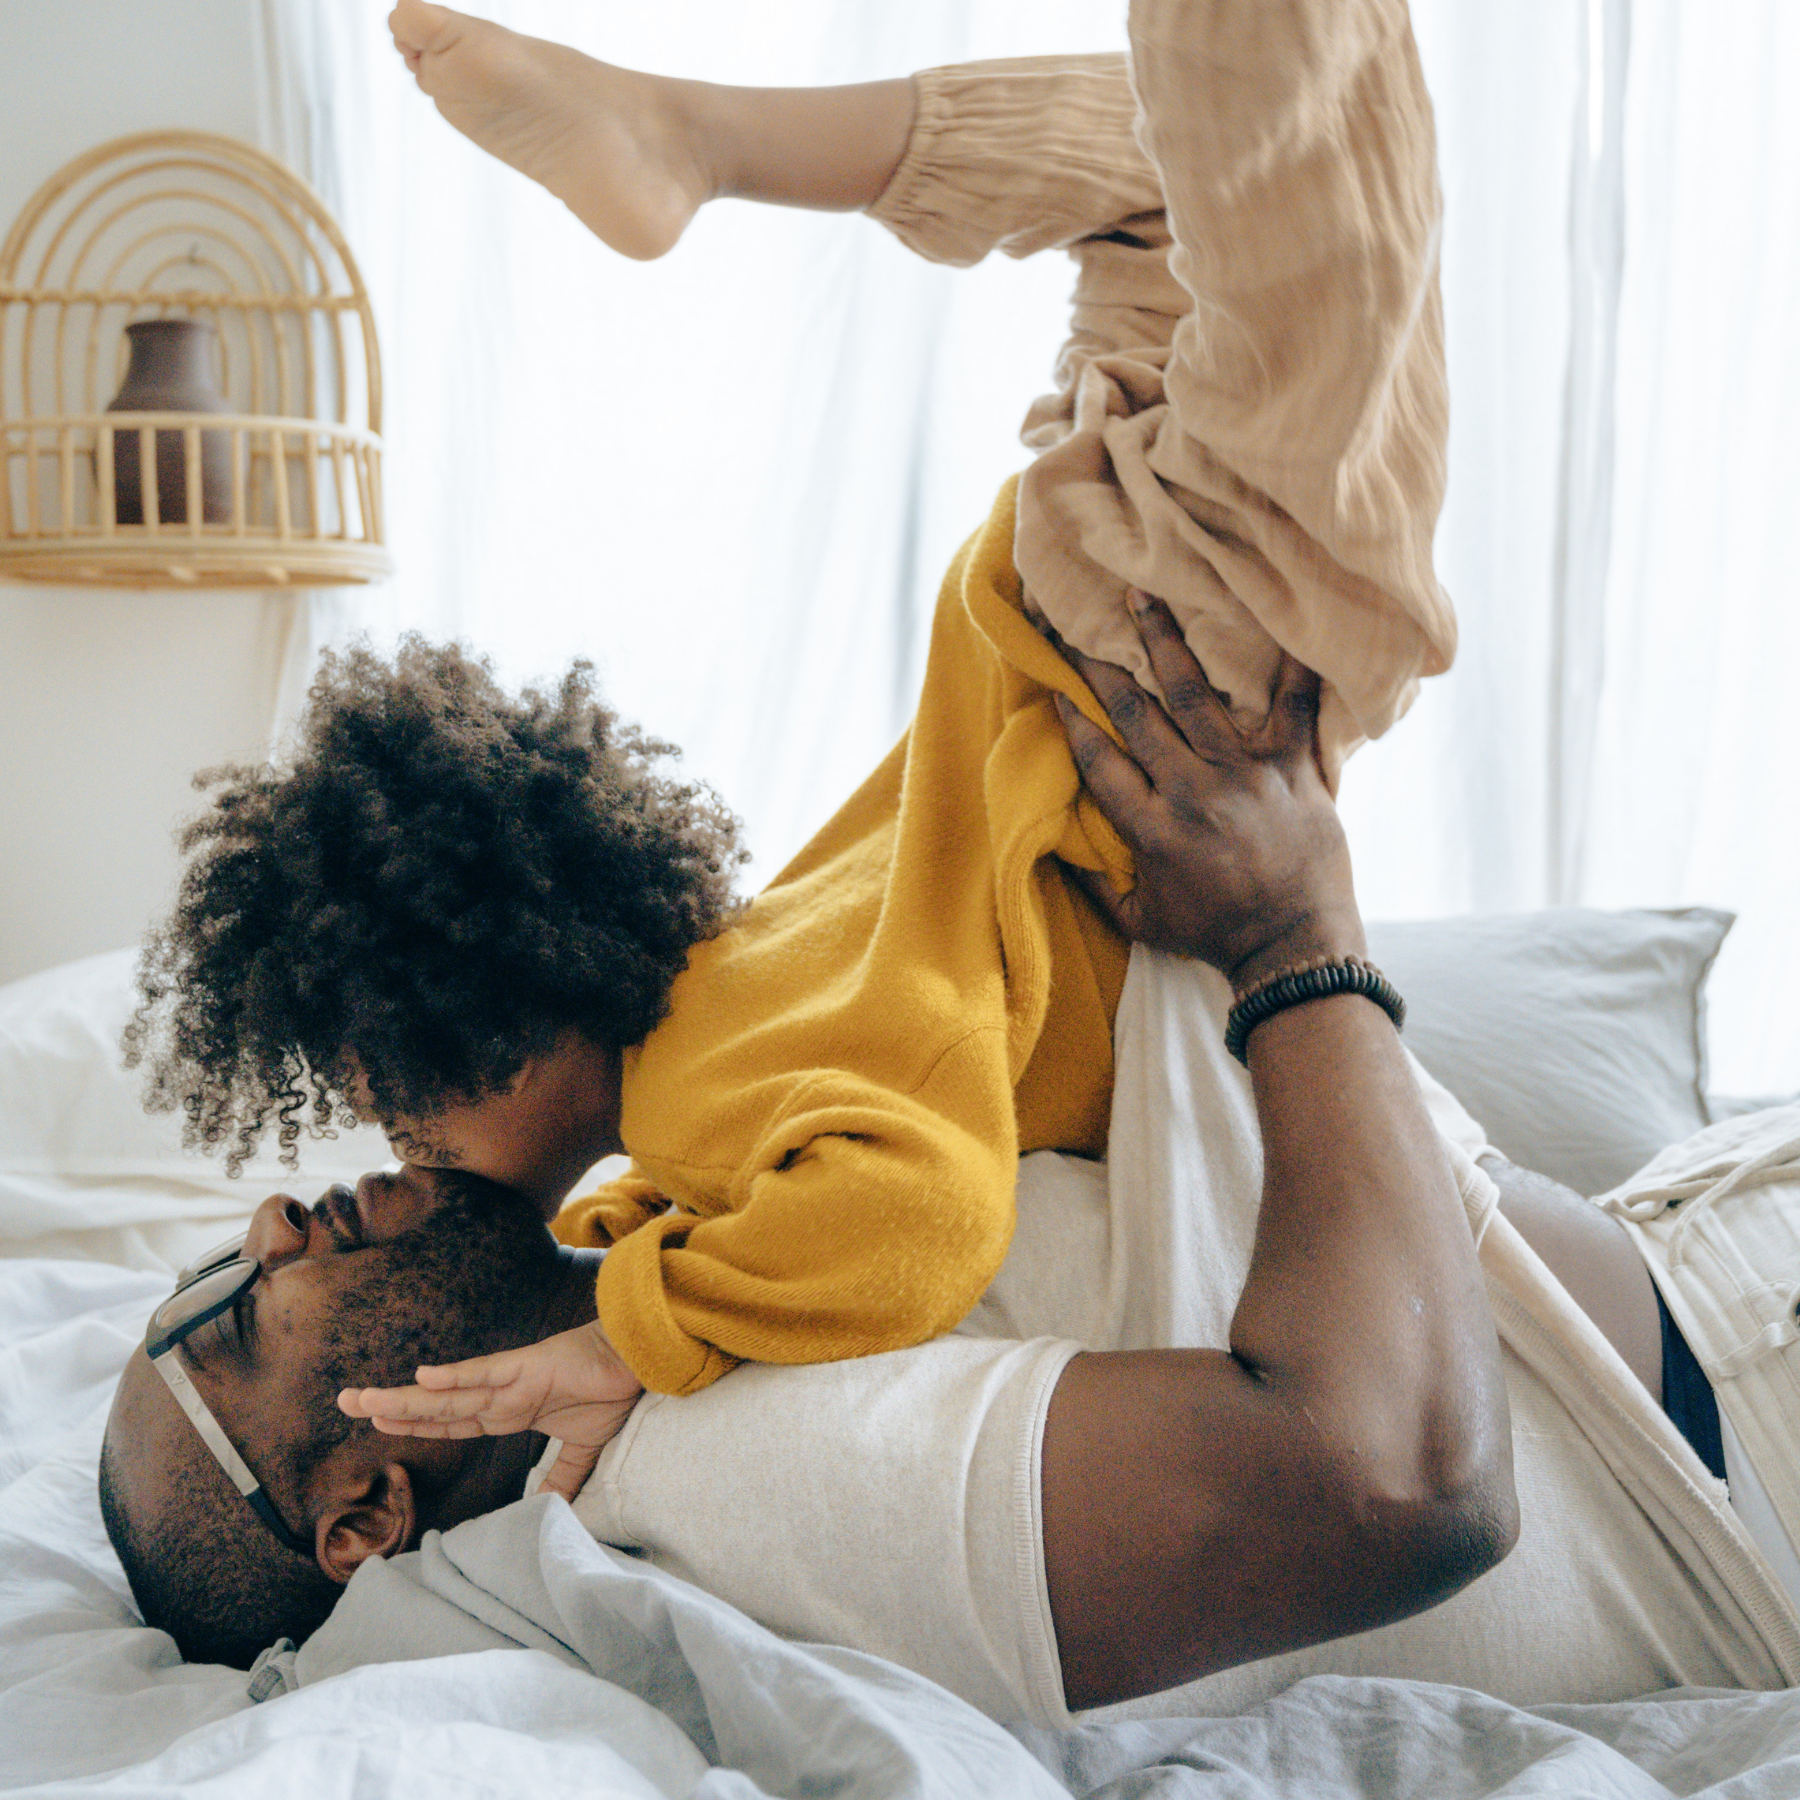 Father playing airplane with child